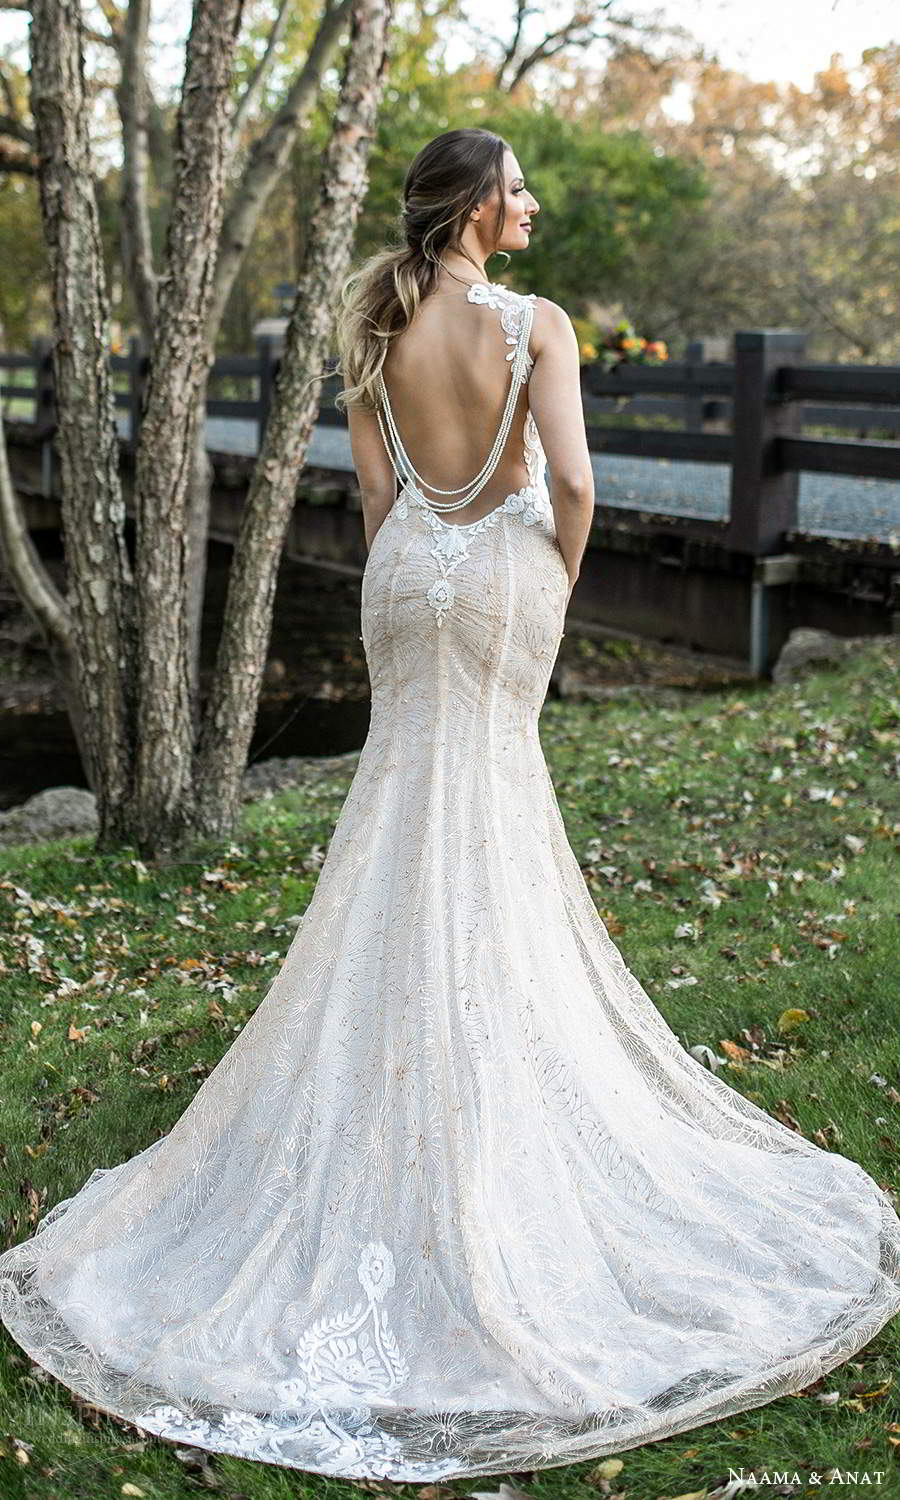 naama and anat fall 2021 bridalsleeveless illusion straps scoop neckline fully embellished fit flare sheath wedding dress chapel train (6) bv